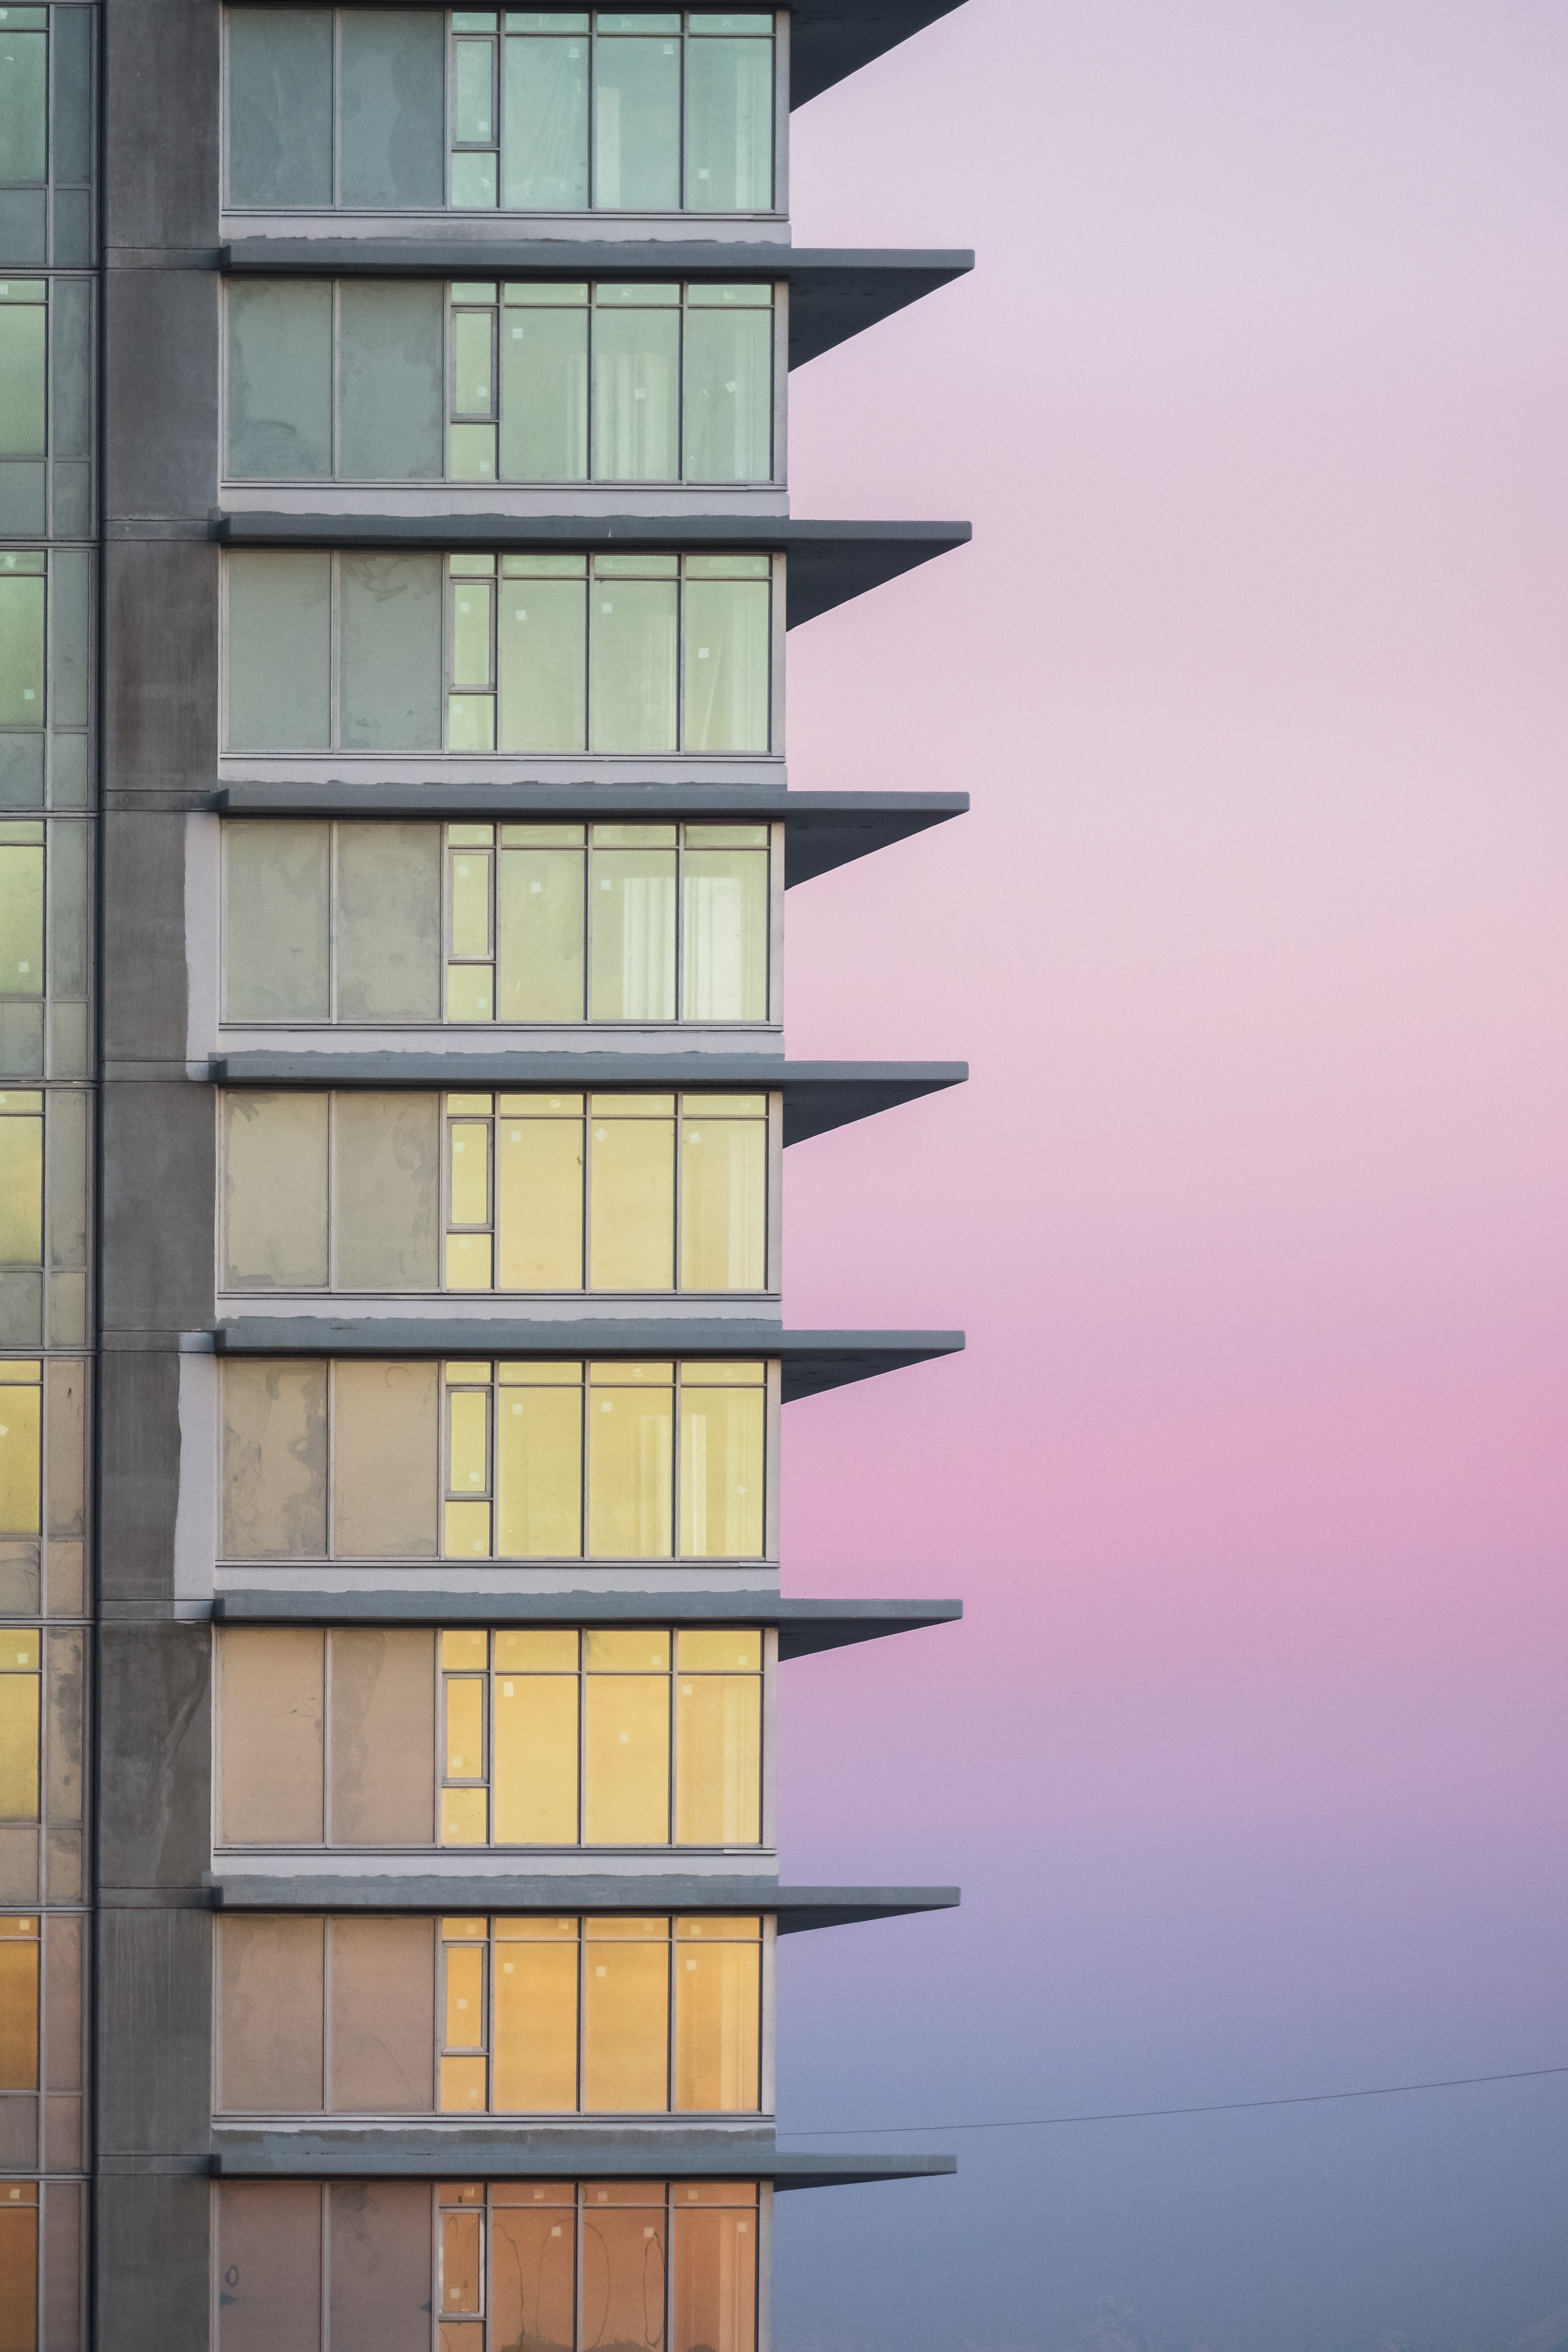 curtain wall high-rise building during daytime